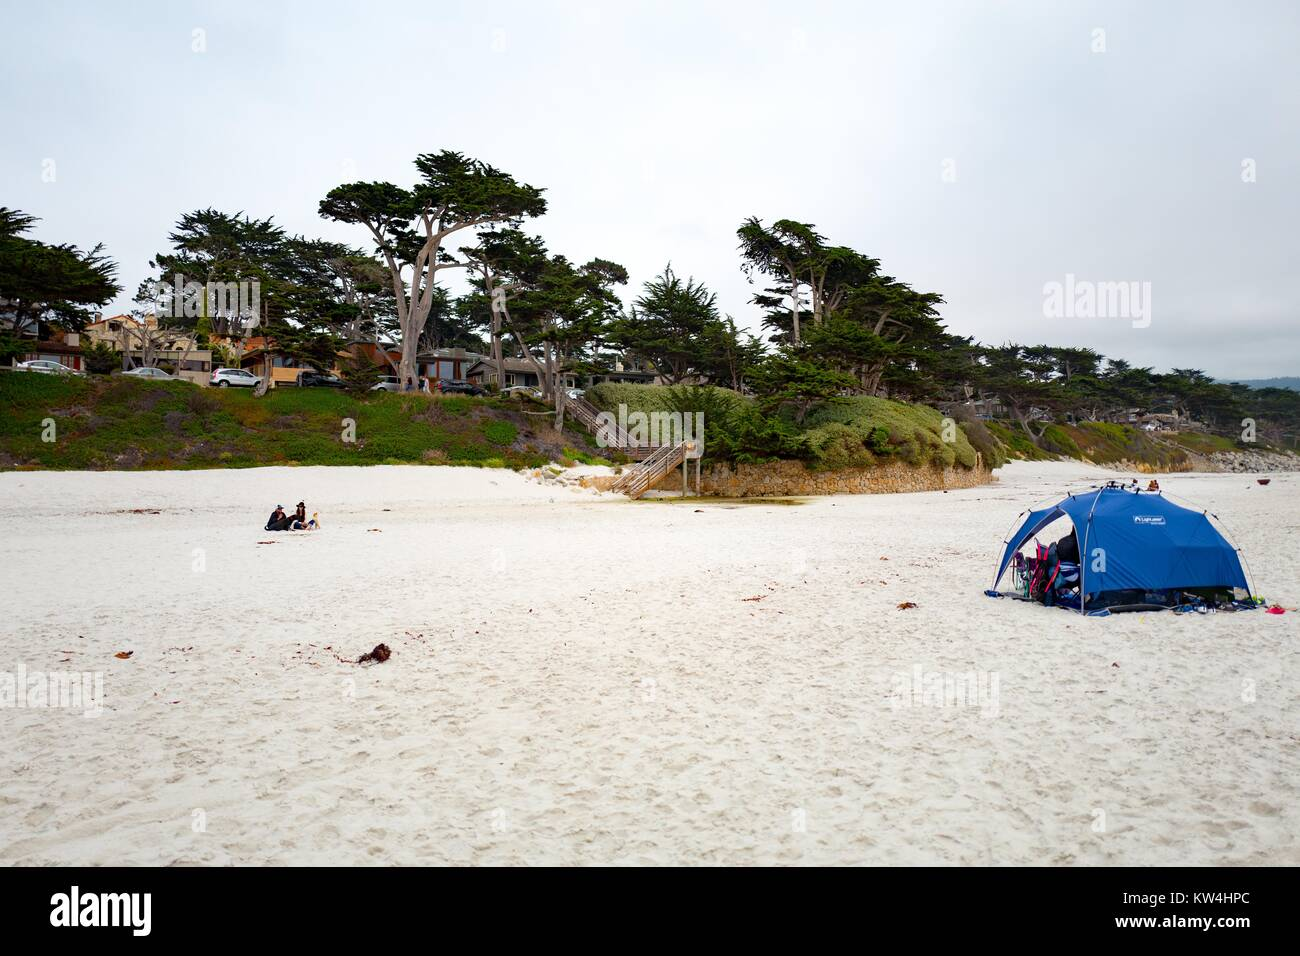 on a cold and cloudy day in carmel-by-the-sea, california, visitors